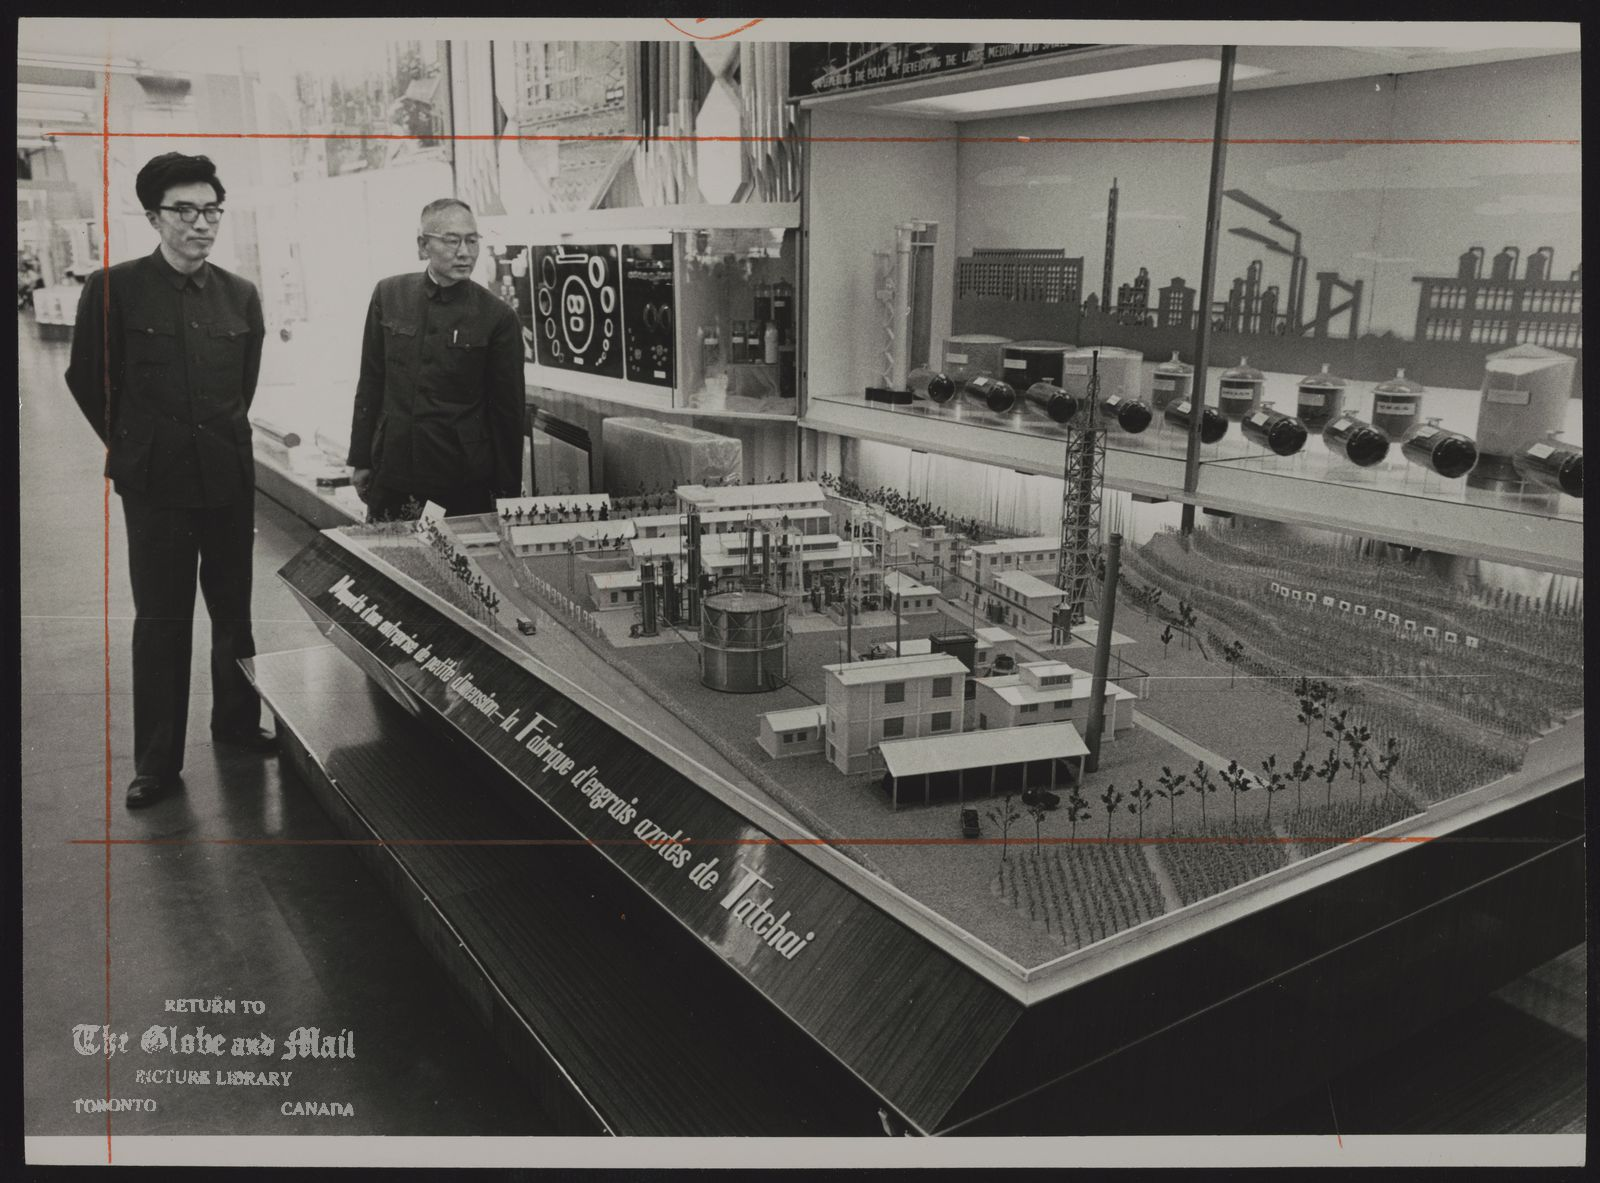 The notes transcribed from the back of this photograph are as follows: CANADIAN NATIONAL EXHIBITION China Pavilion (LI Yung-ting, right, with interpreter, examines model of a nitrogen factory that is patrol an exhibit by the People's Republic of China, at the Canadian National Exhibition.)